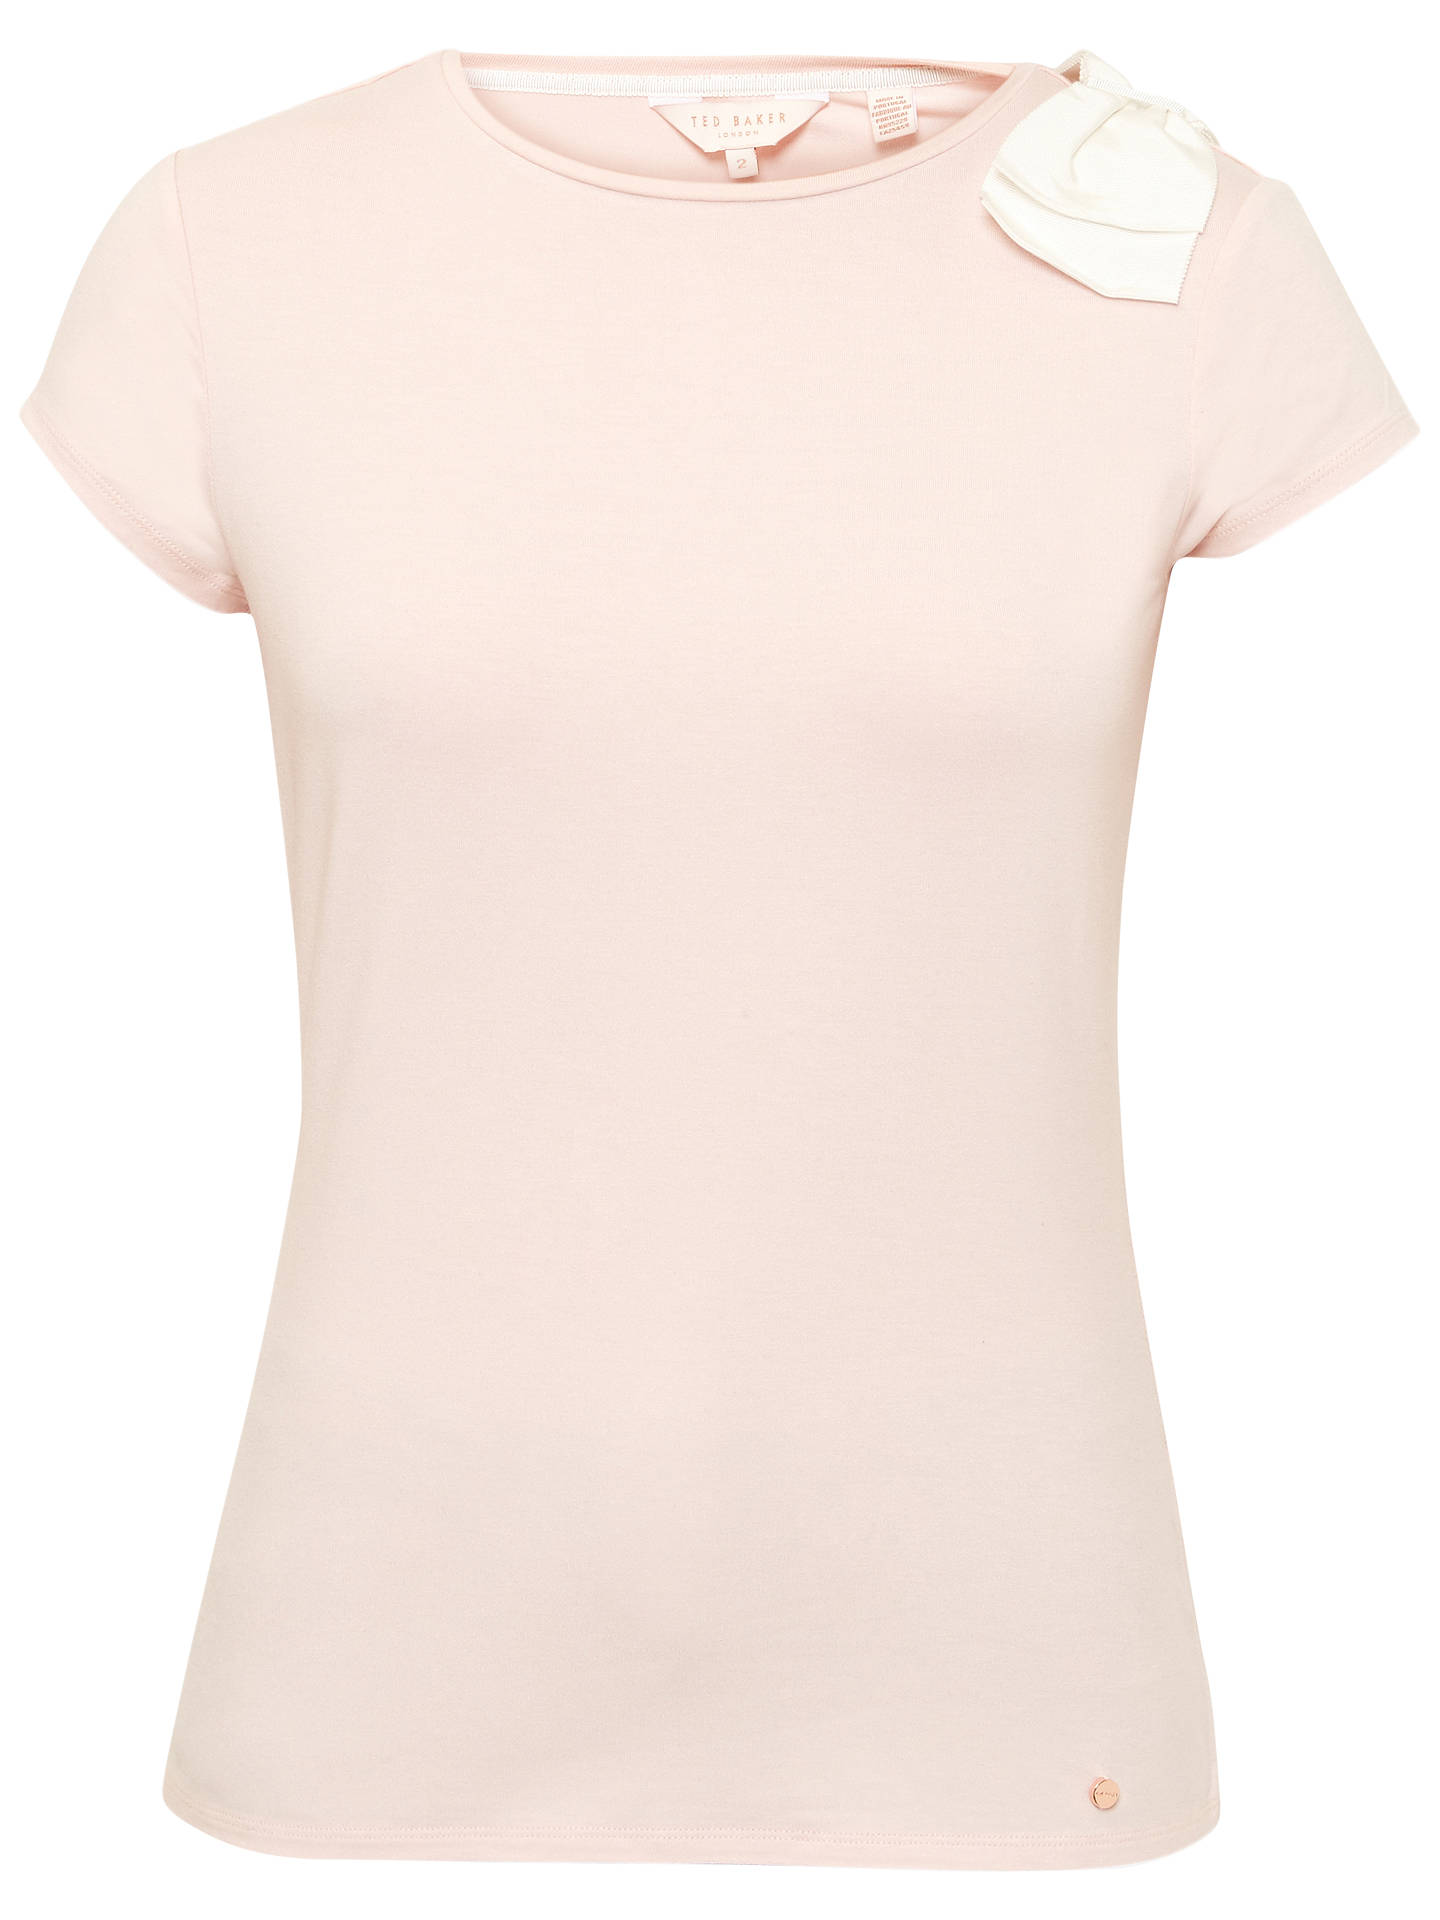 cb1586eee Ted Baker Bow Shoulder T-Shirt at John Lewis   Partners